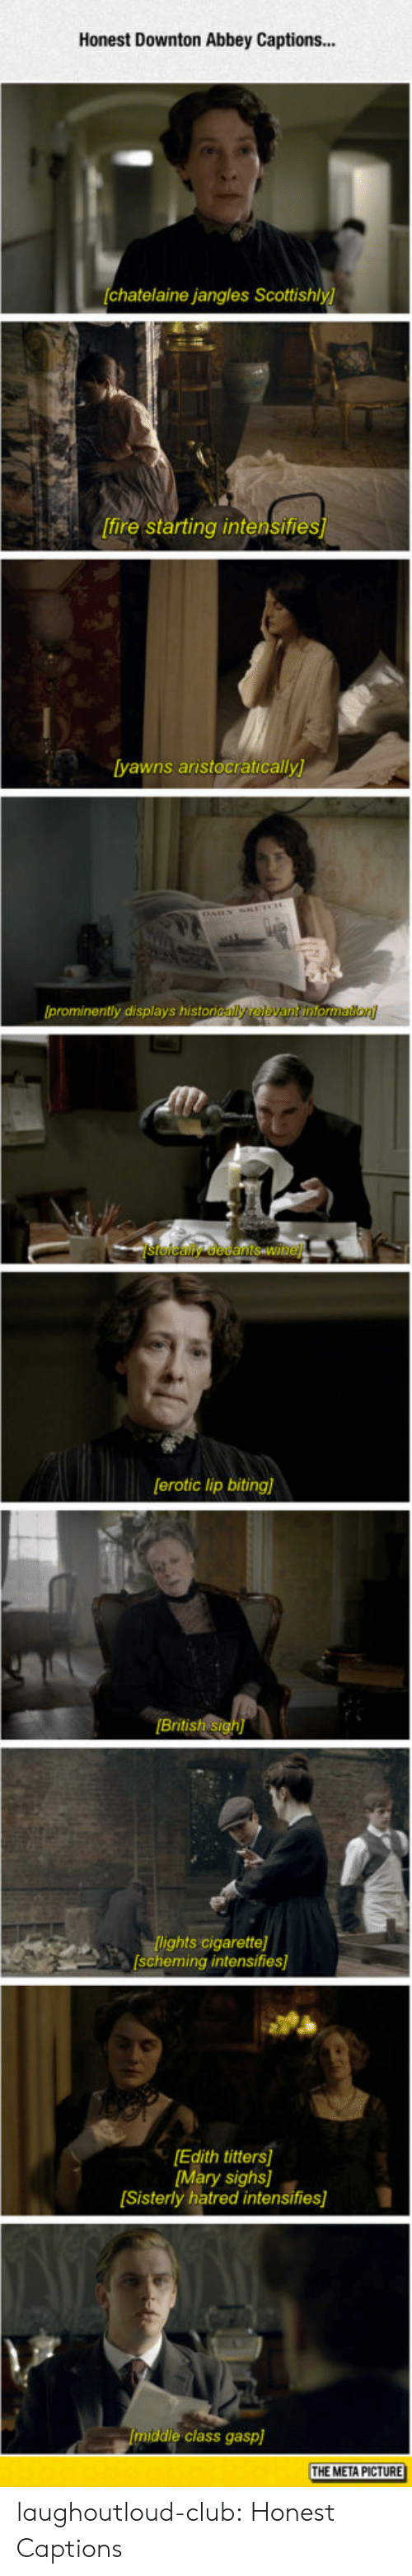 erotic: Honest Downton Abbey Captions...  chatelaine jangles Scottishly)  [fire starting intensifie  yawns aristocratically  prominently displays histon  [erotic lip biting)  British si  CARlights cigarette]  scheming intensifies]  Edith titters  Mary sighs]  Sisterly hatred intensifies]  middle class gasp]  THE META PICTURE laughoutloud-club:  Honest Captions